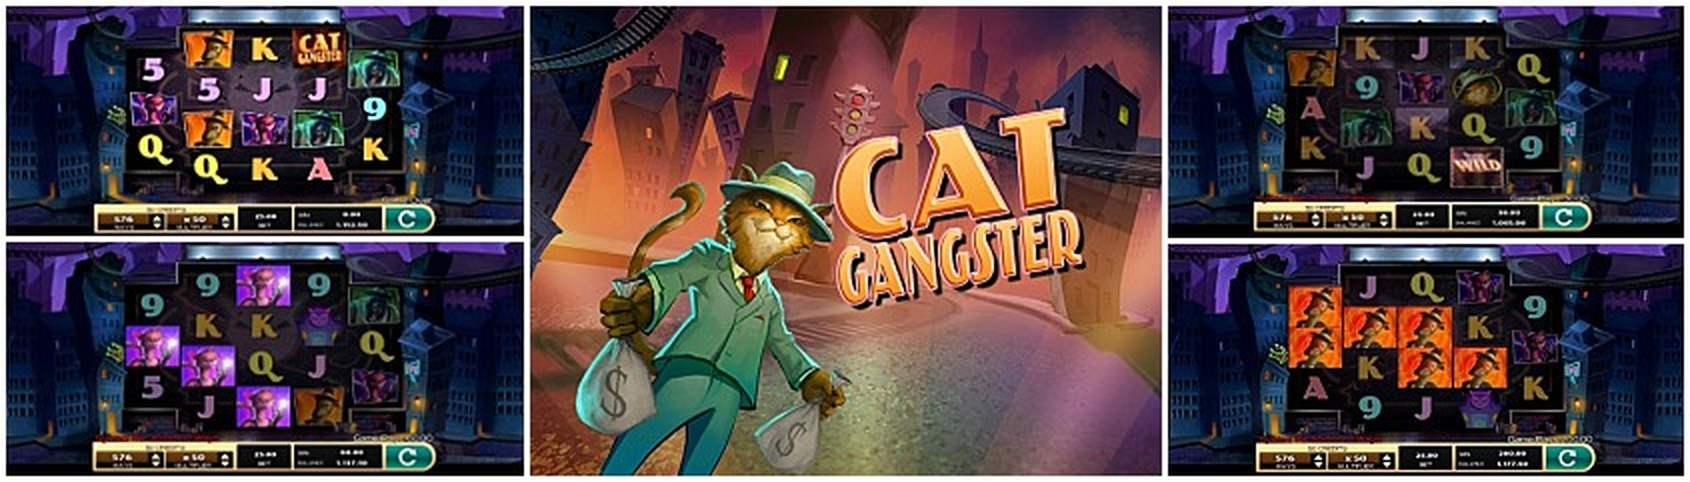 The Cat Gangster Online Slot Demo Game by High 5 Games